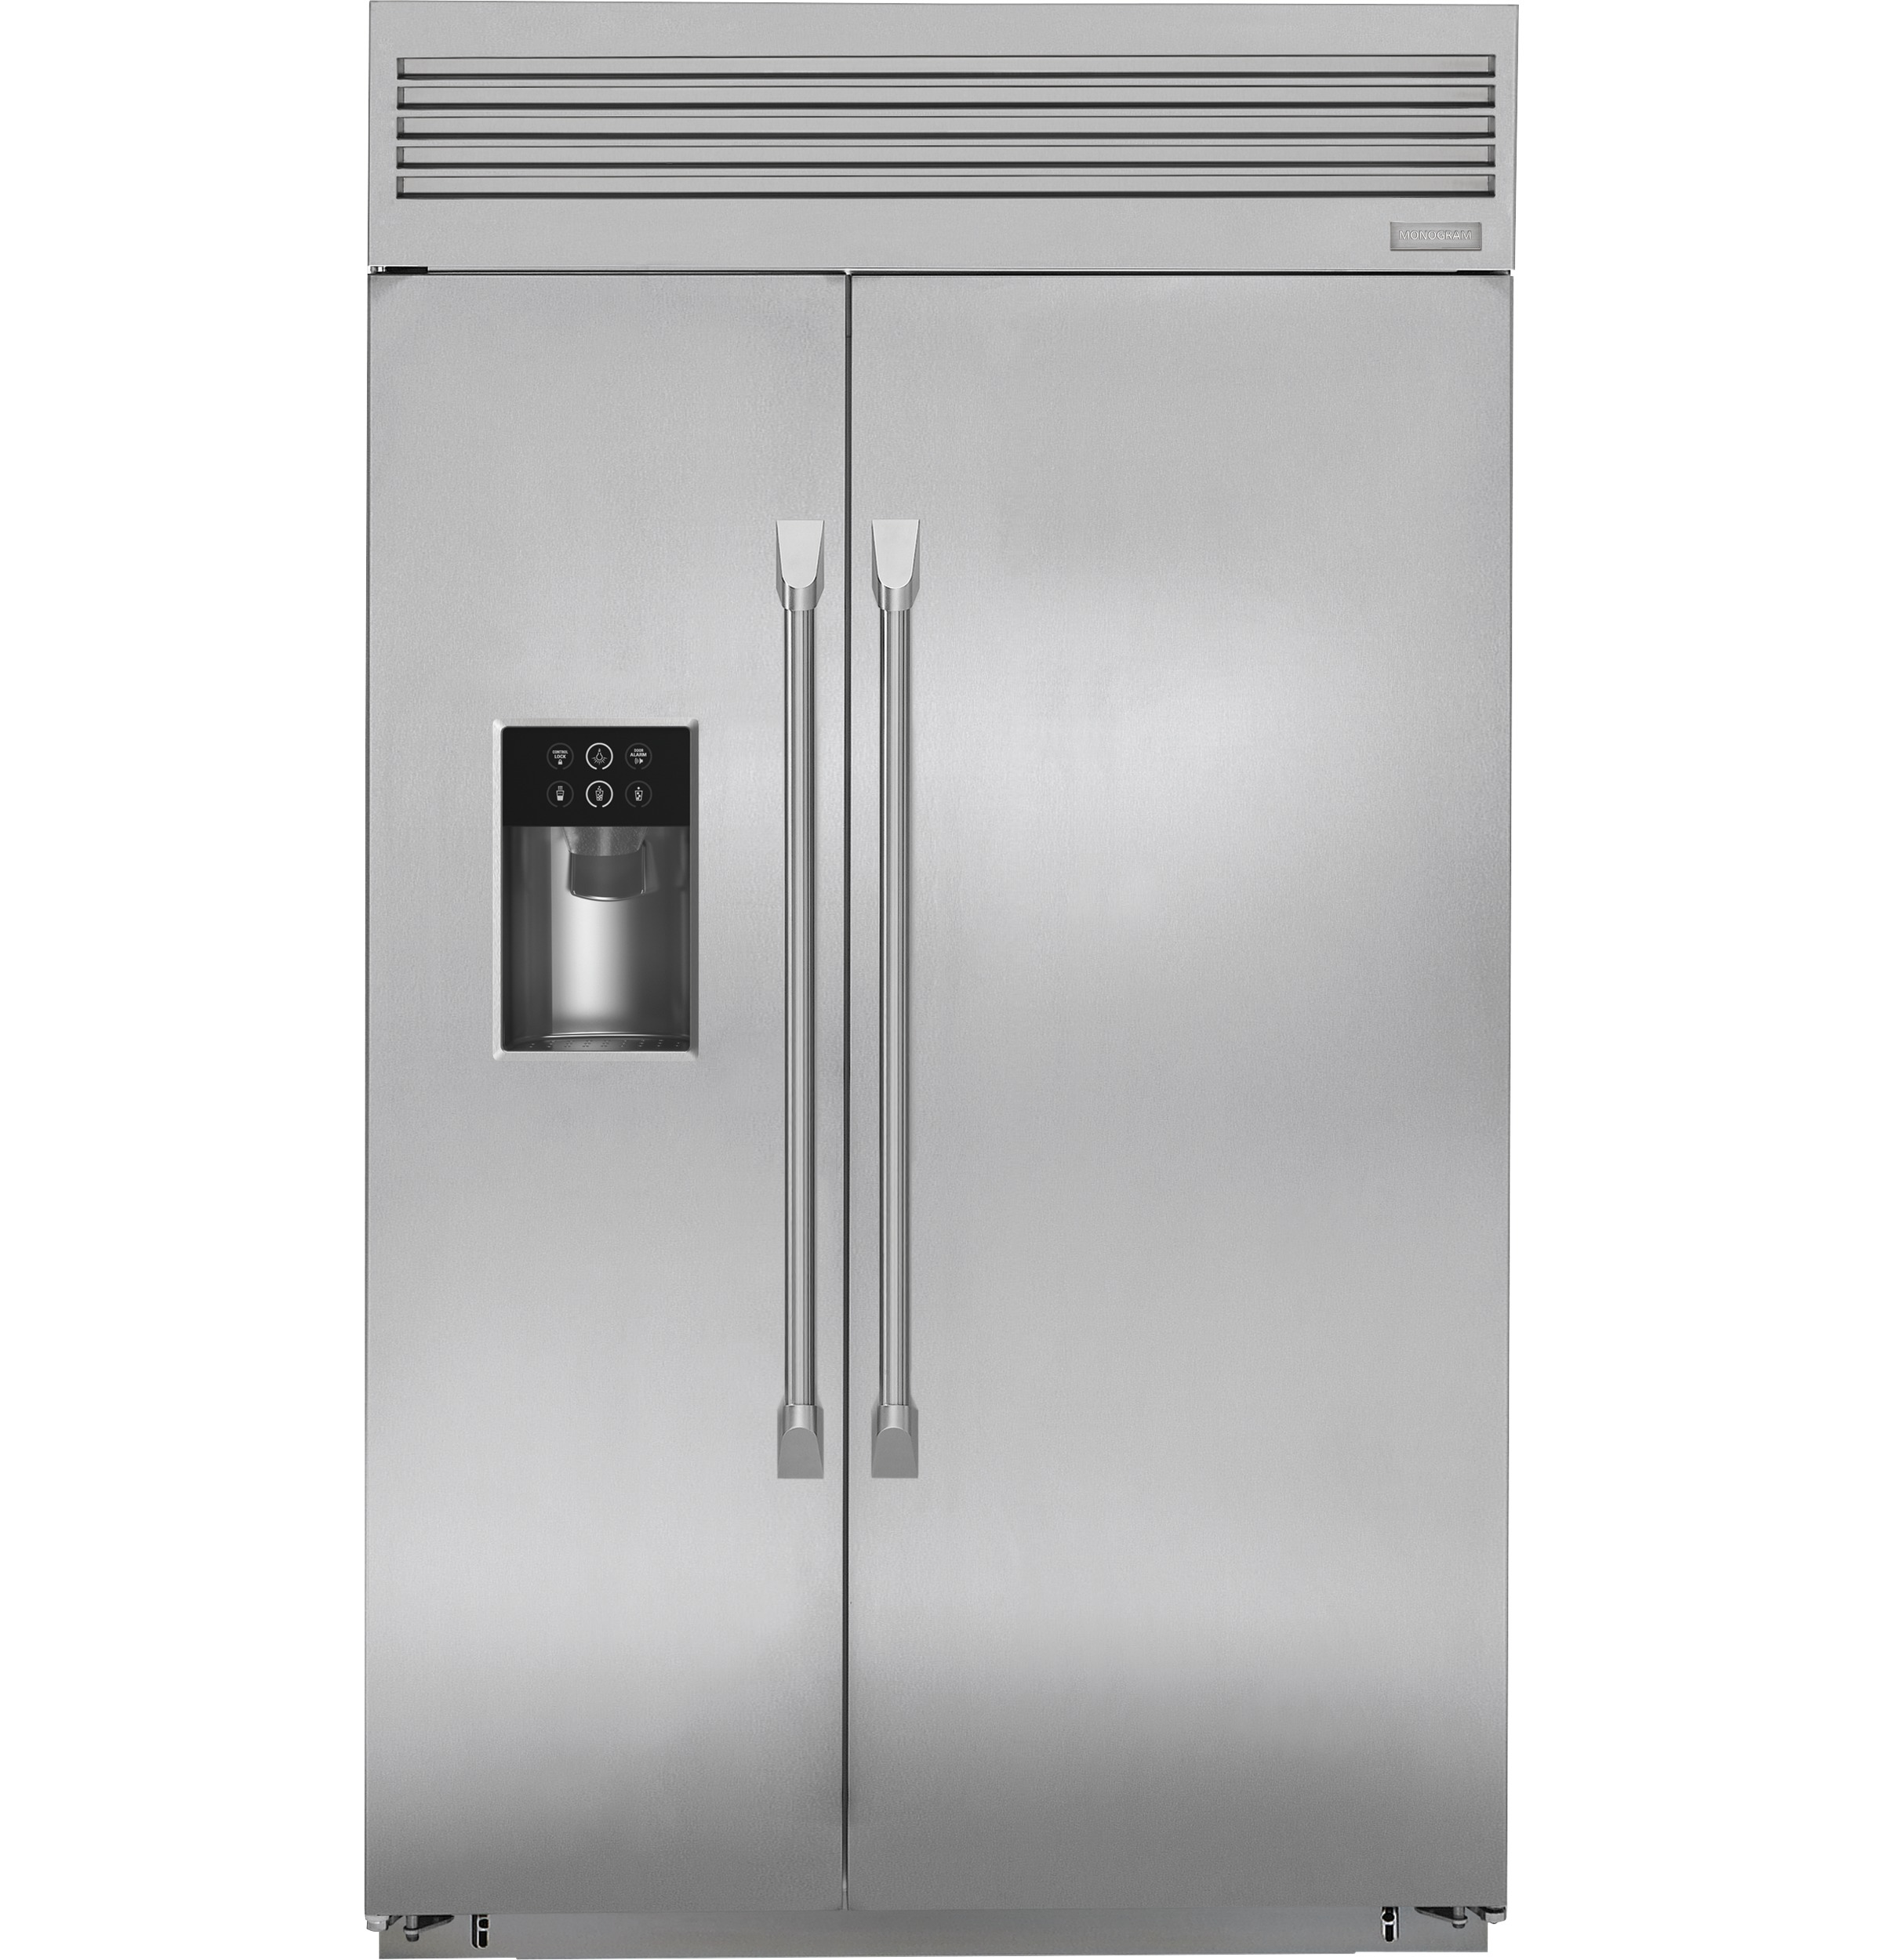 "Monogram Monogram 48"" Smart Built-In Professional Side-by-Side Refrigerator with Dispenser"